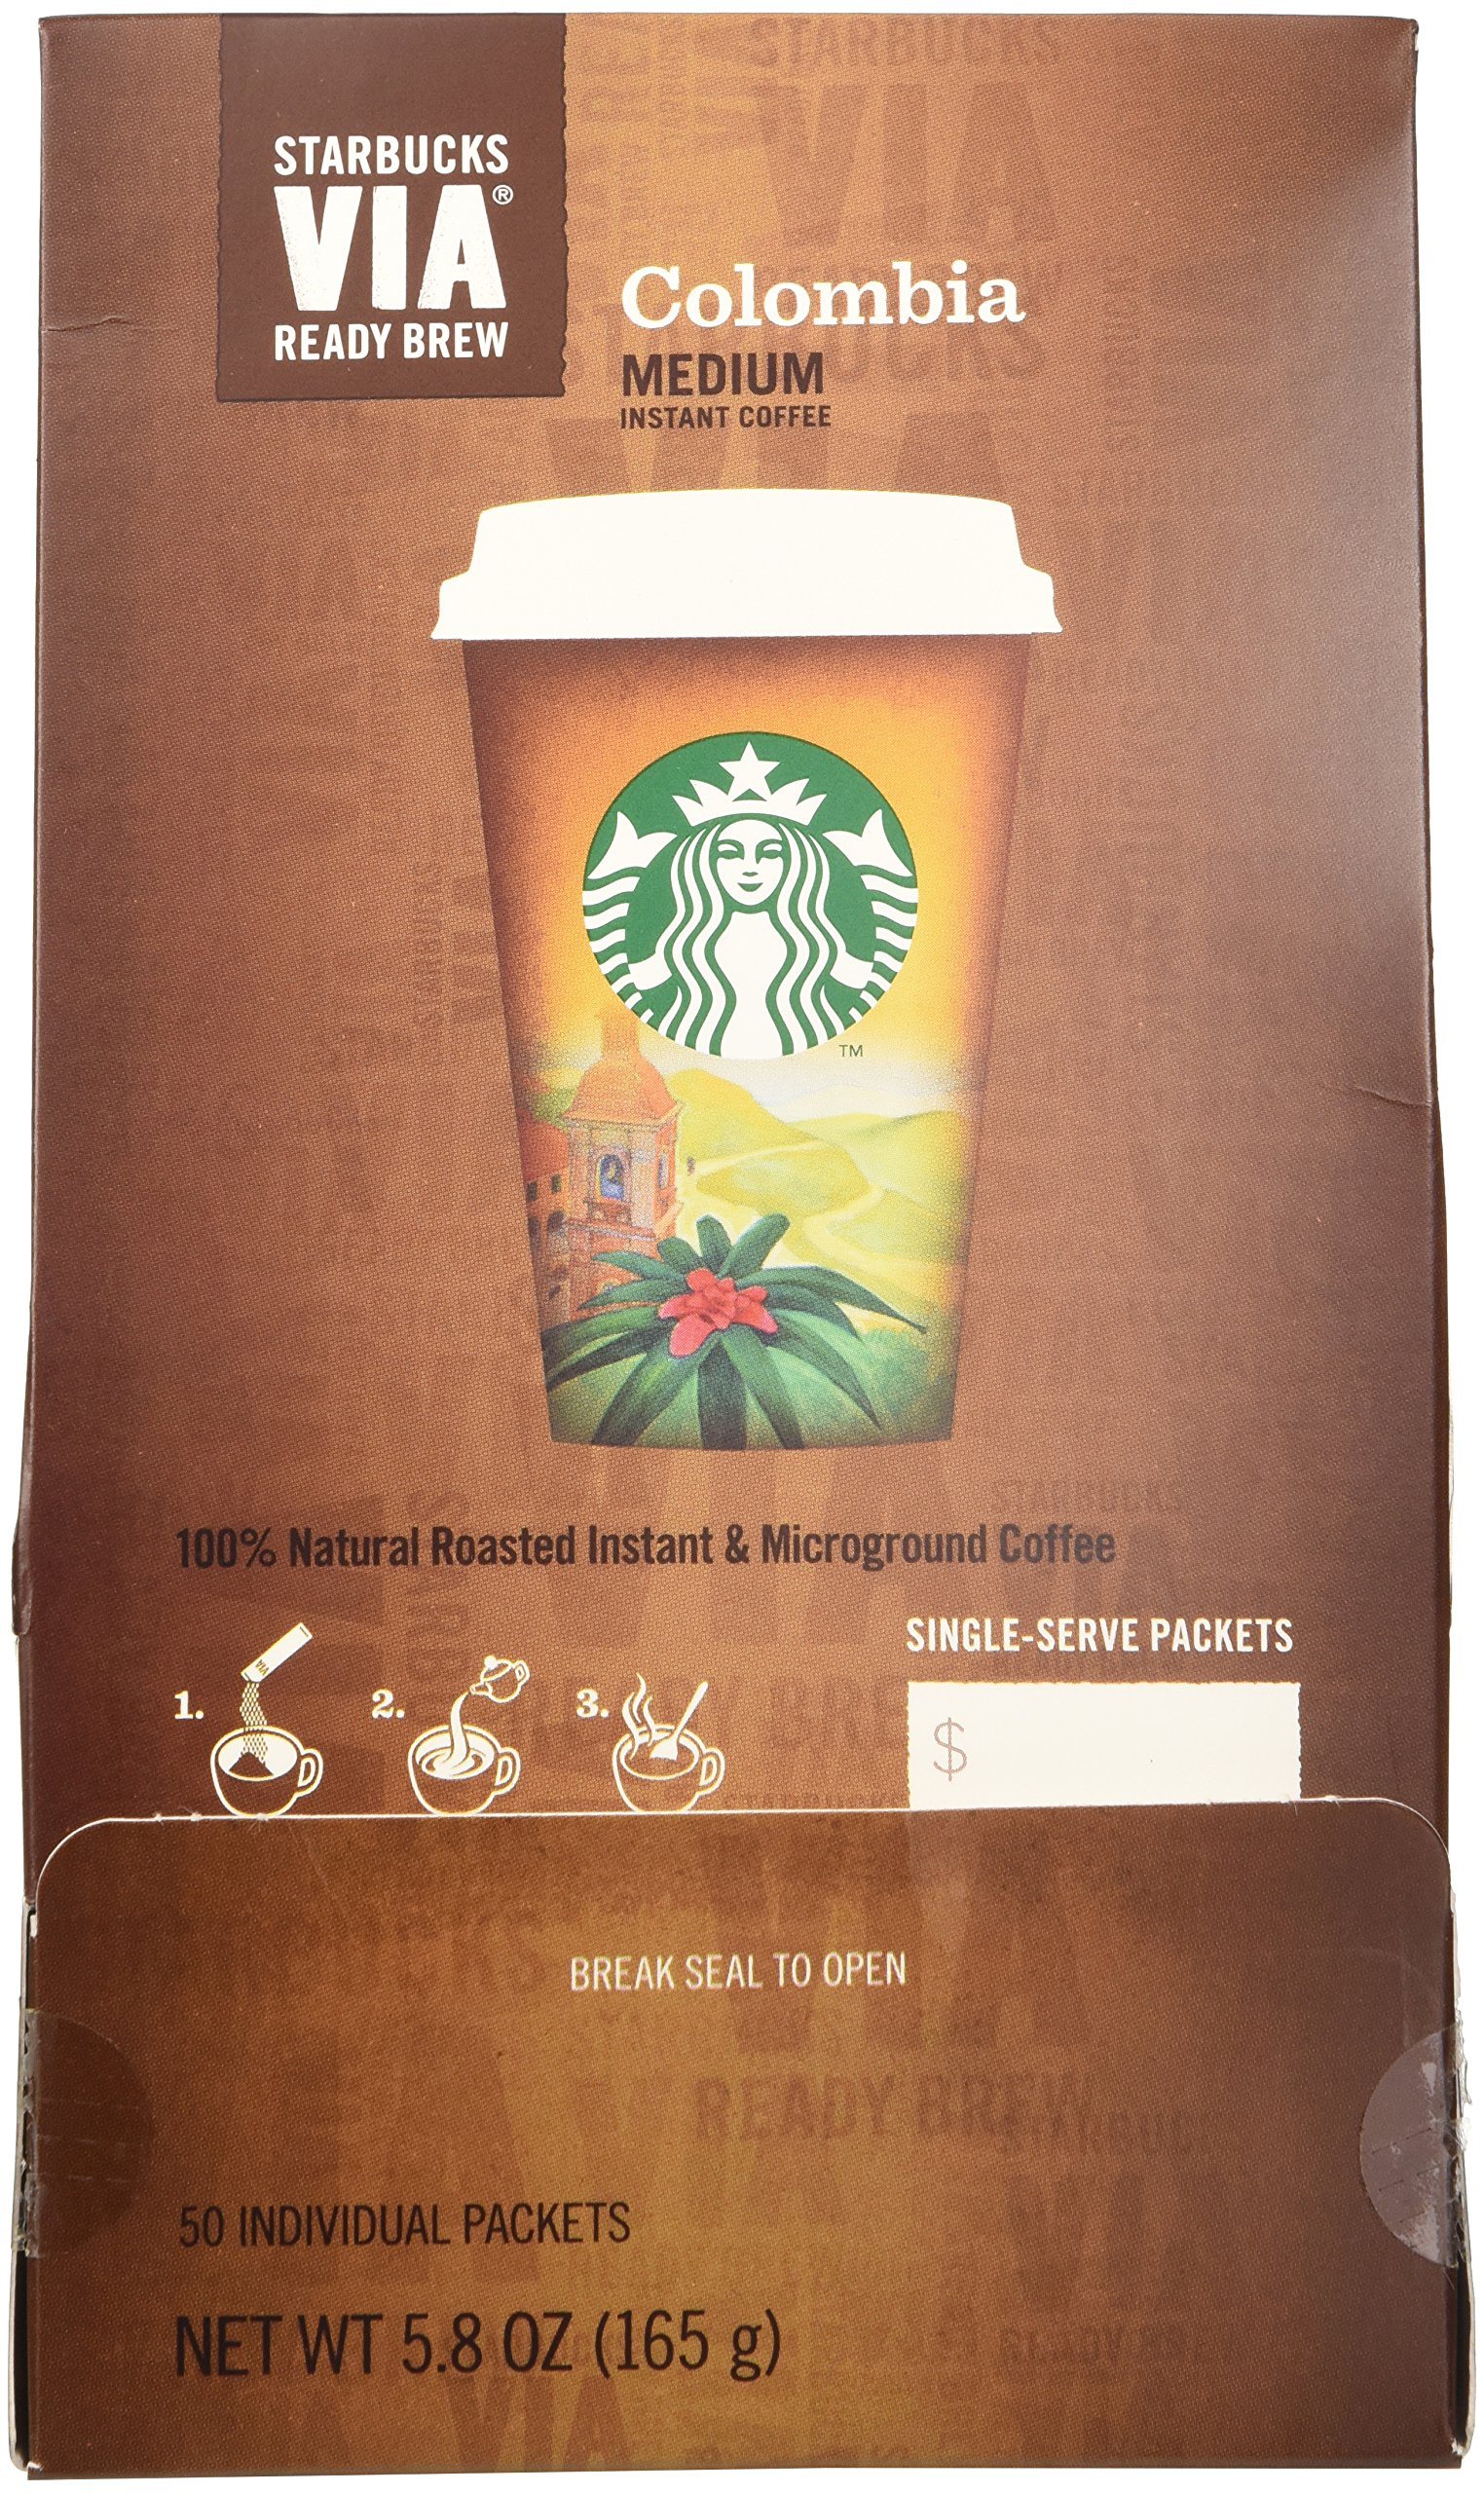 Starbucks VIA Ready Brew Coffee, Colombia, 3.3-Gram Packages,50 Count (packaging may vary) by Starbucks